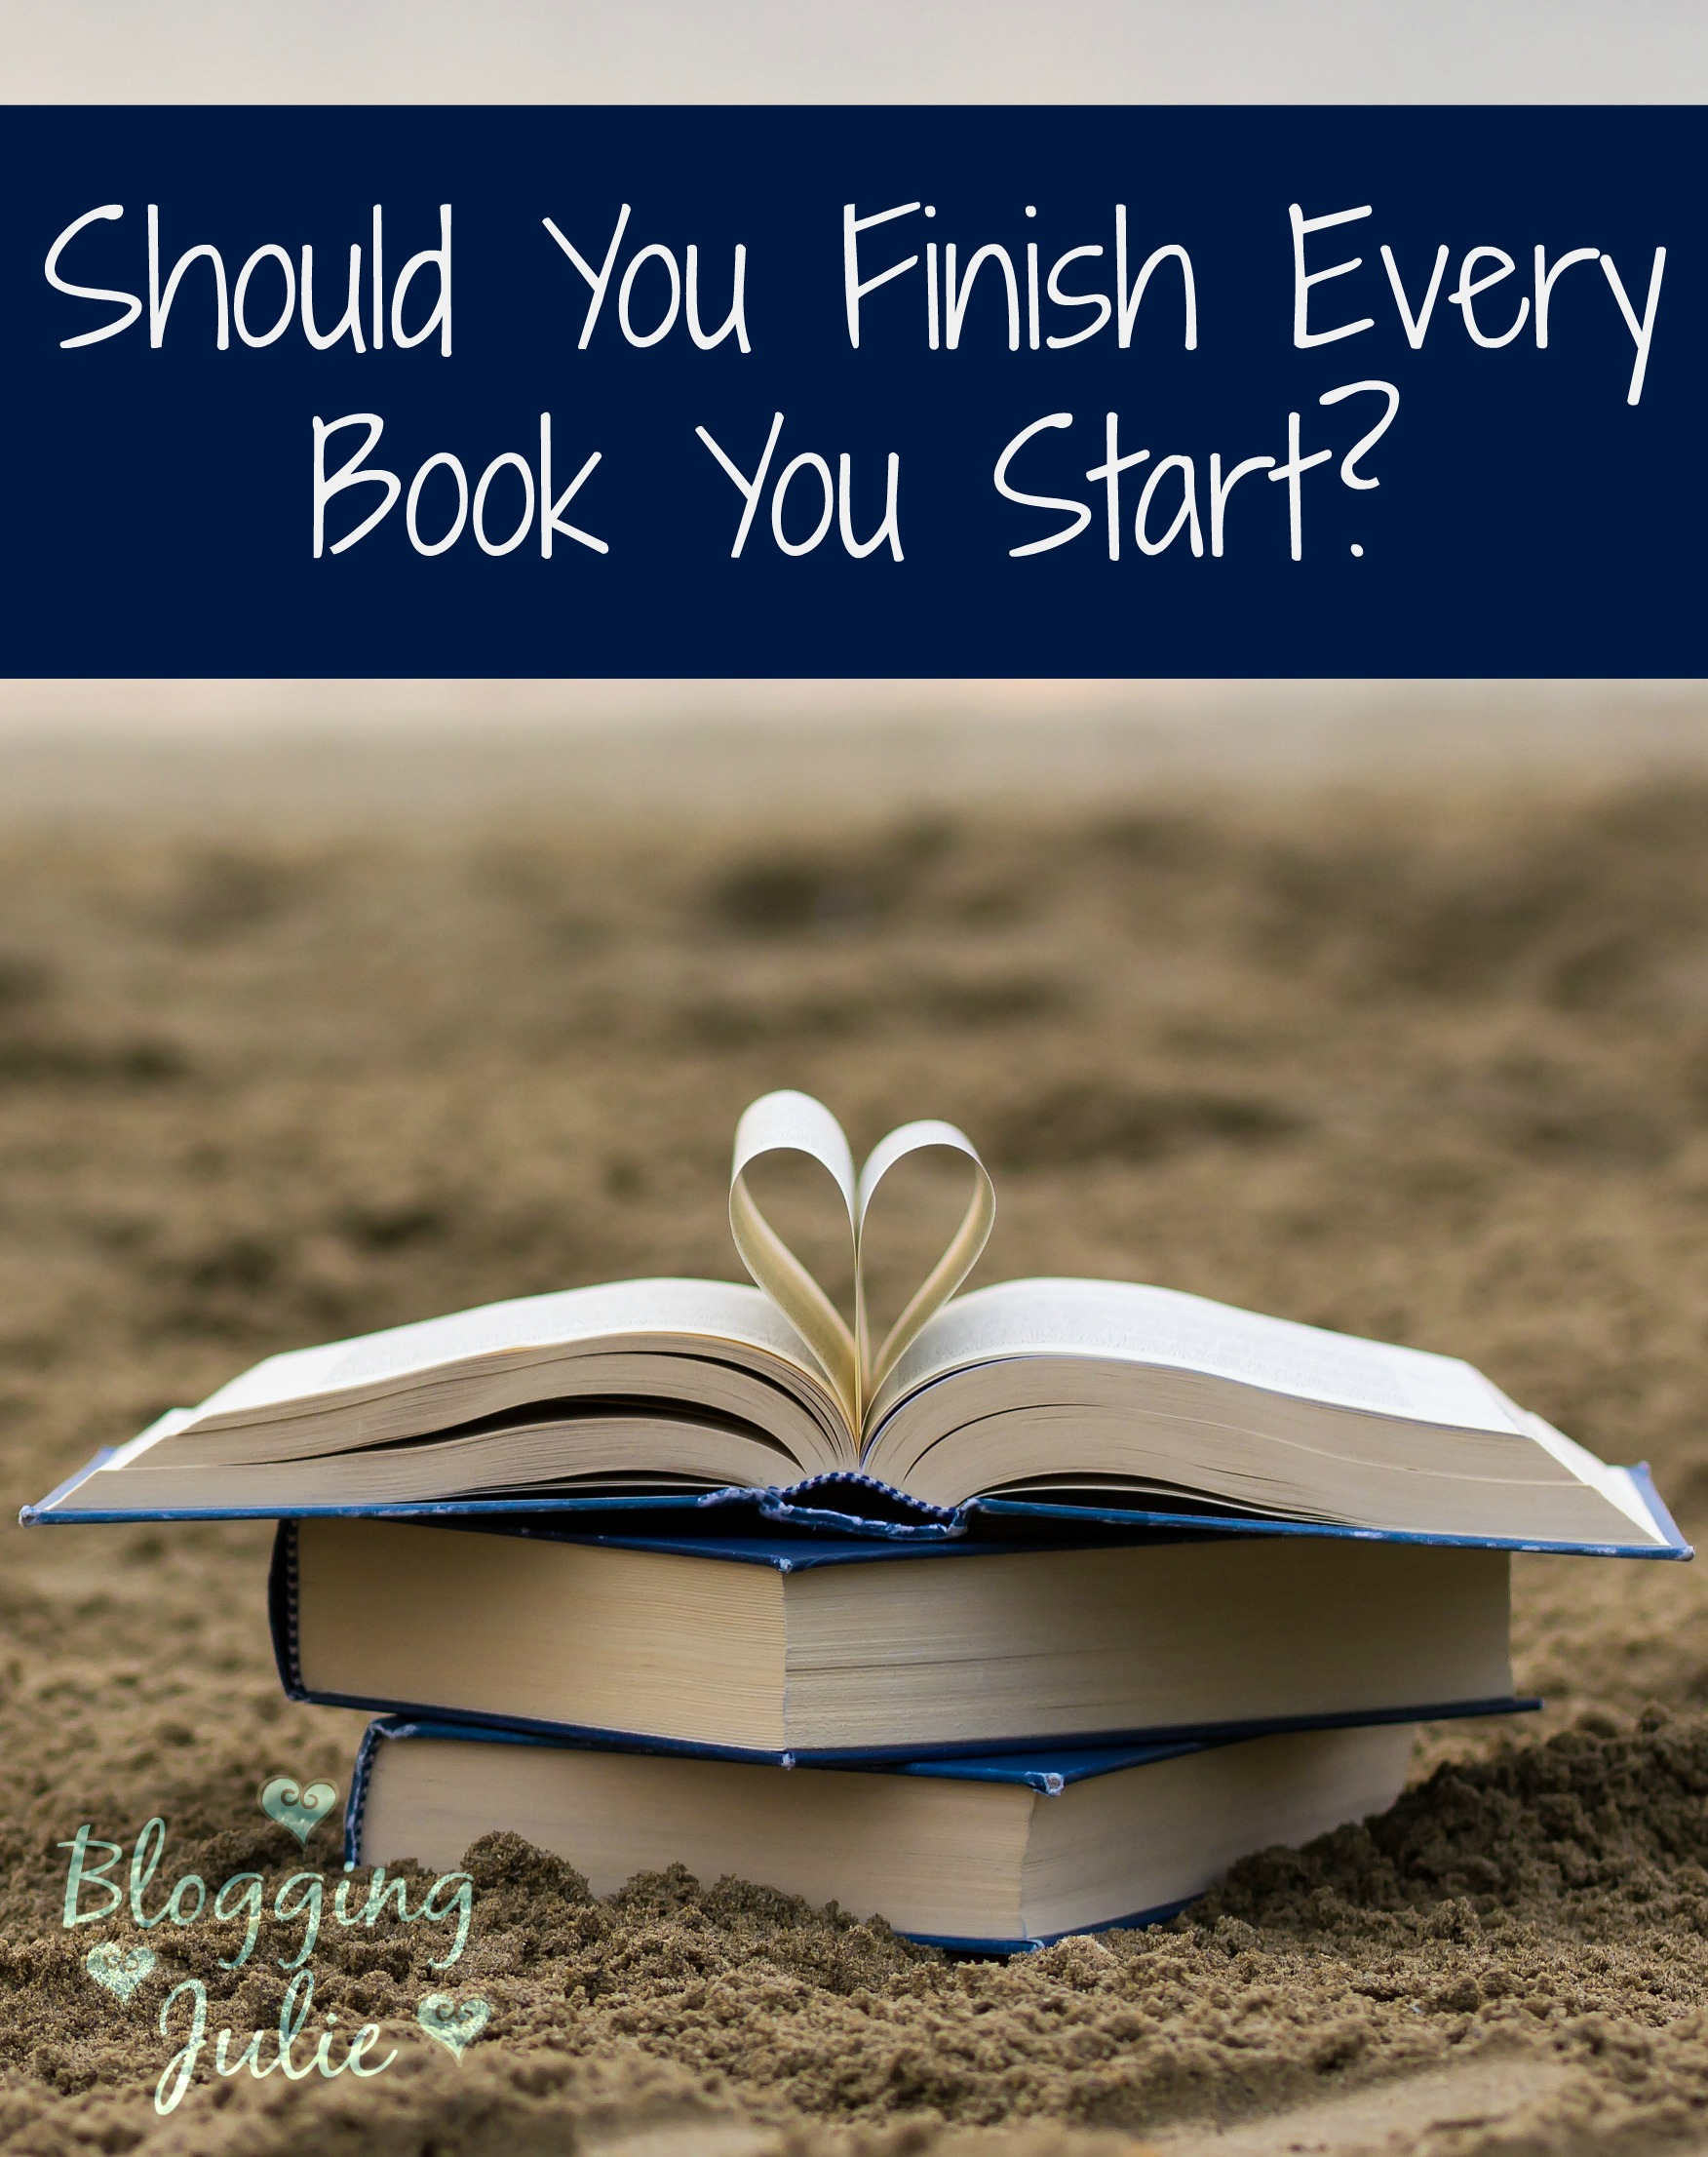 Should You Finish Every Book You Start?